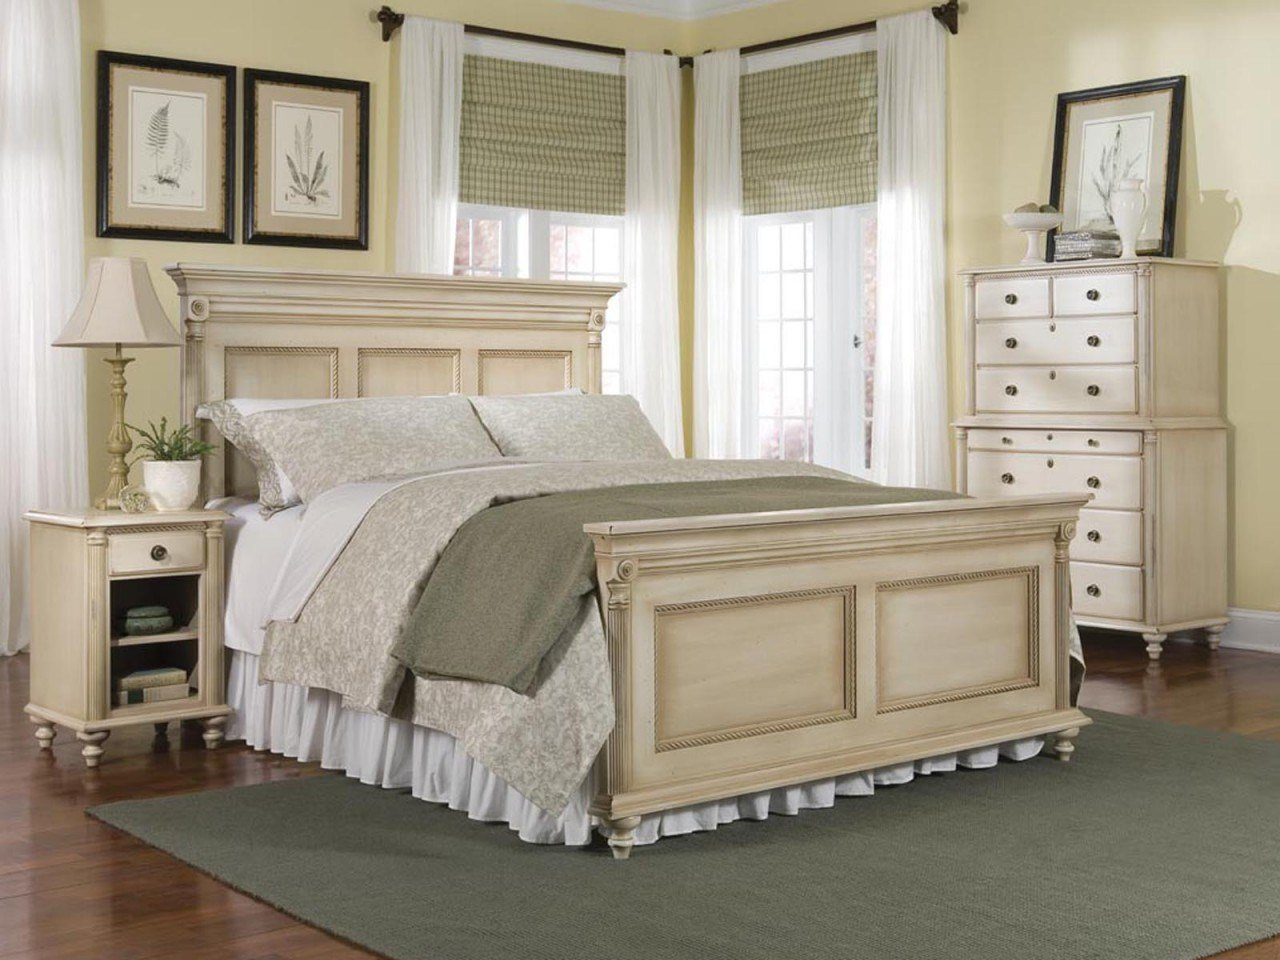 Best Durham Furniture Savile Row 4 Piece Panel Bedroom Set In Antique Cream Bedroom Furniture Reviews With Pictures